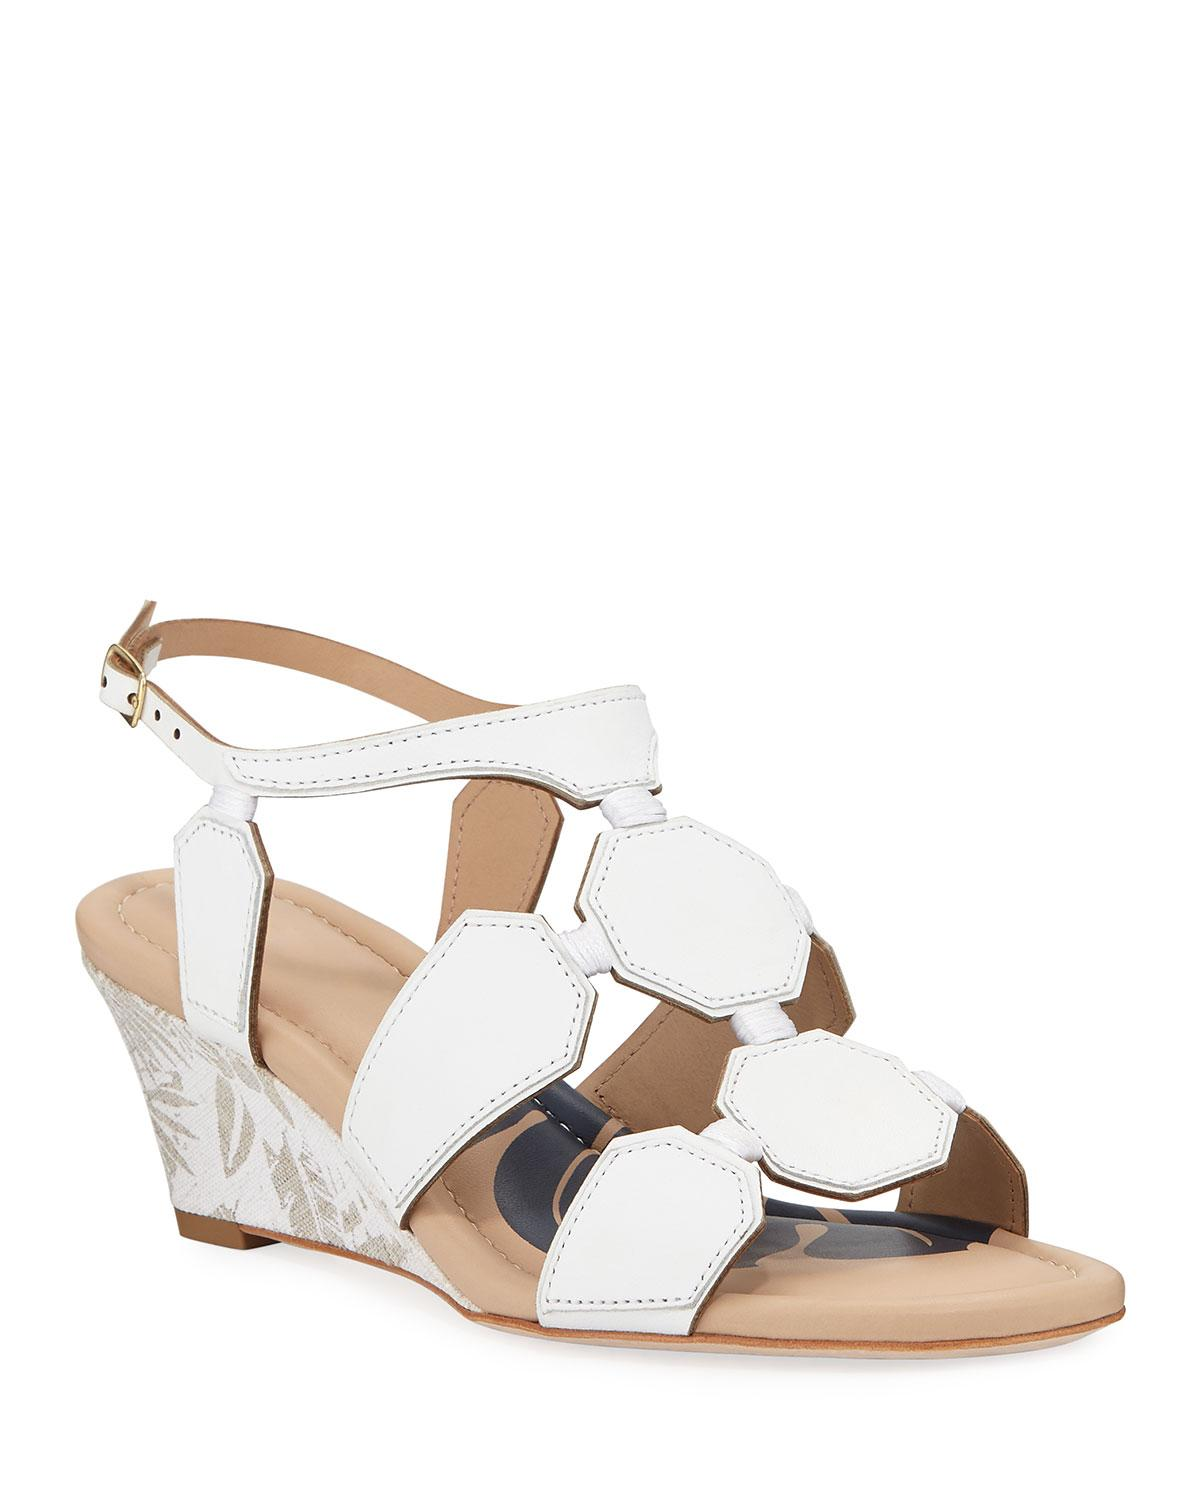 c68689b3d Lyst - Tommy Bahama Ivy Beach Geometric Wedge Sandals in White ...